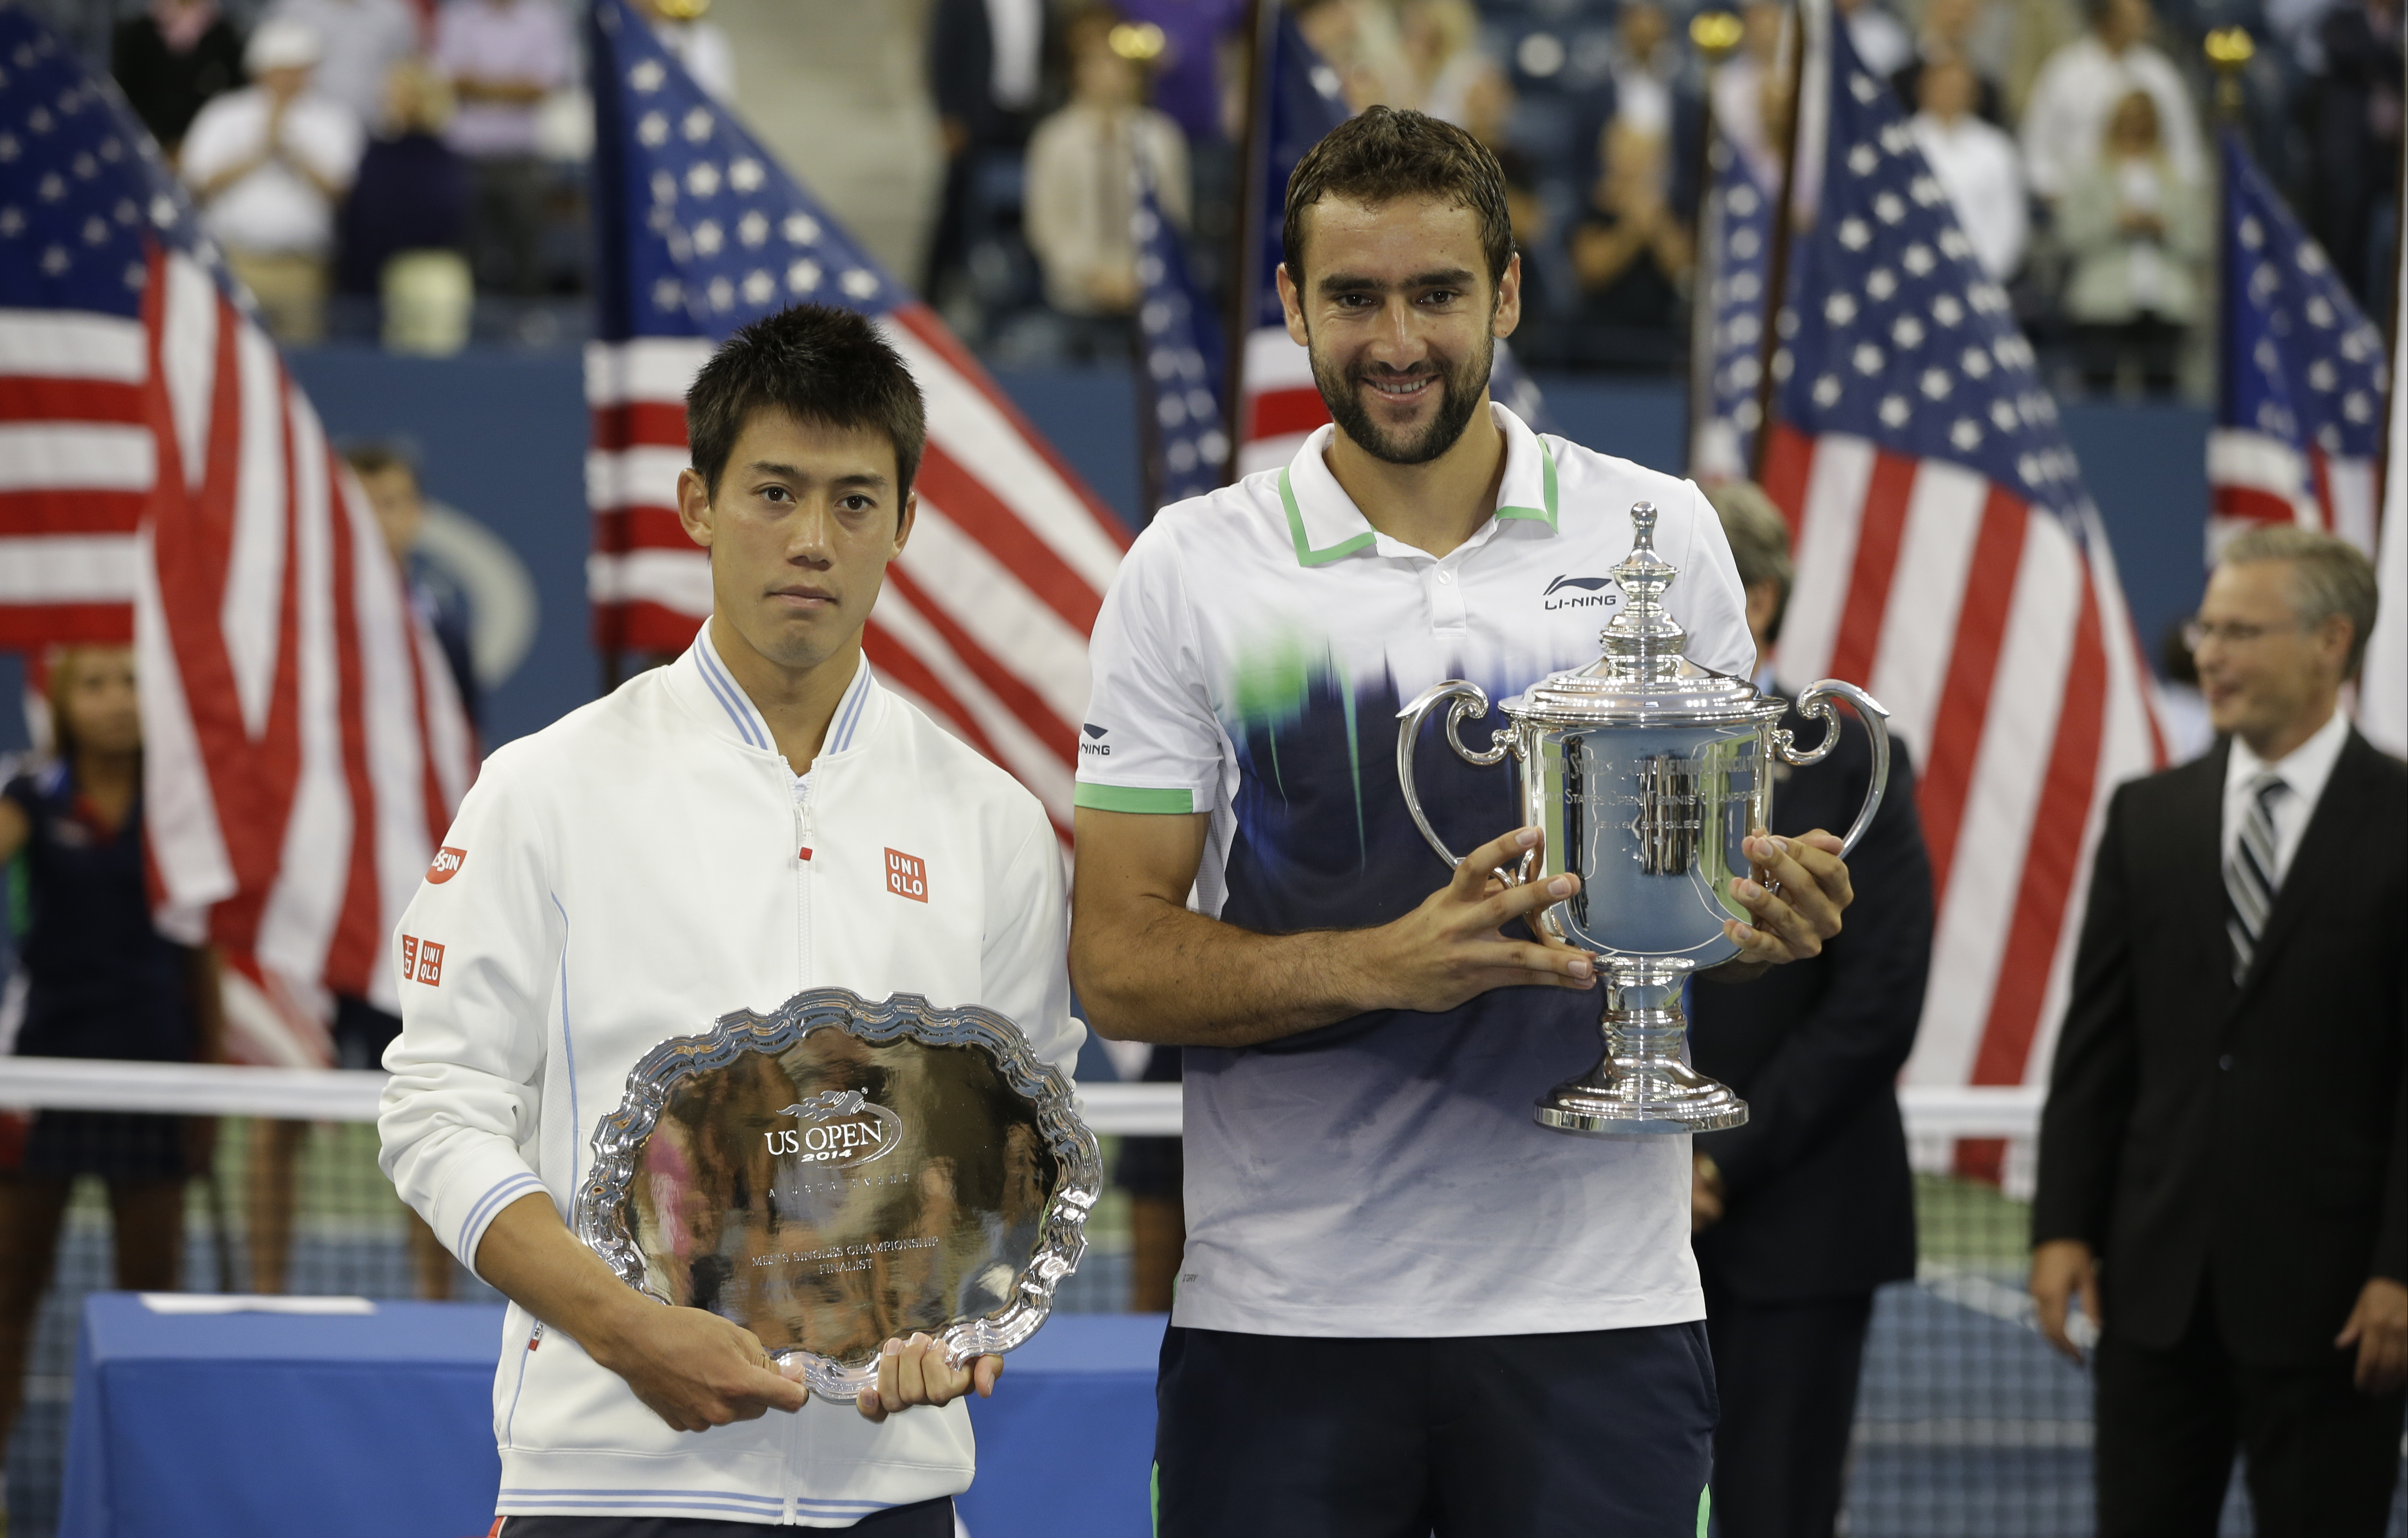 FILE - In this Sept. 8, 2014, file photo, Marin Cilic, of Croatia, right, holds the championship trophy and Kei Nishikori, of Japan, holds the runner-up trophy after Cilic defeated Nishikori in the championship match of the 2014 U.S. Open tennis tournamen